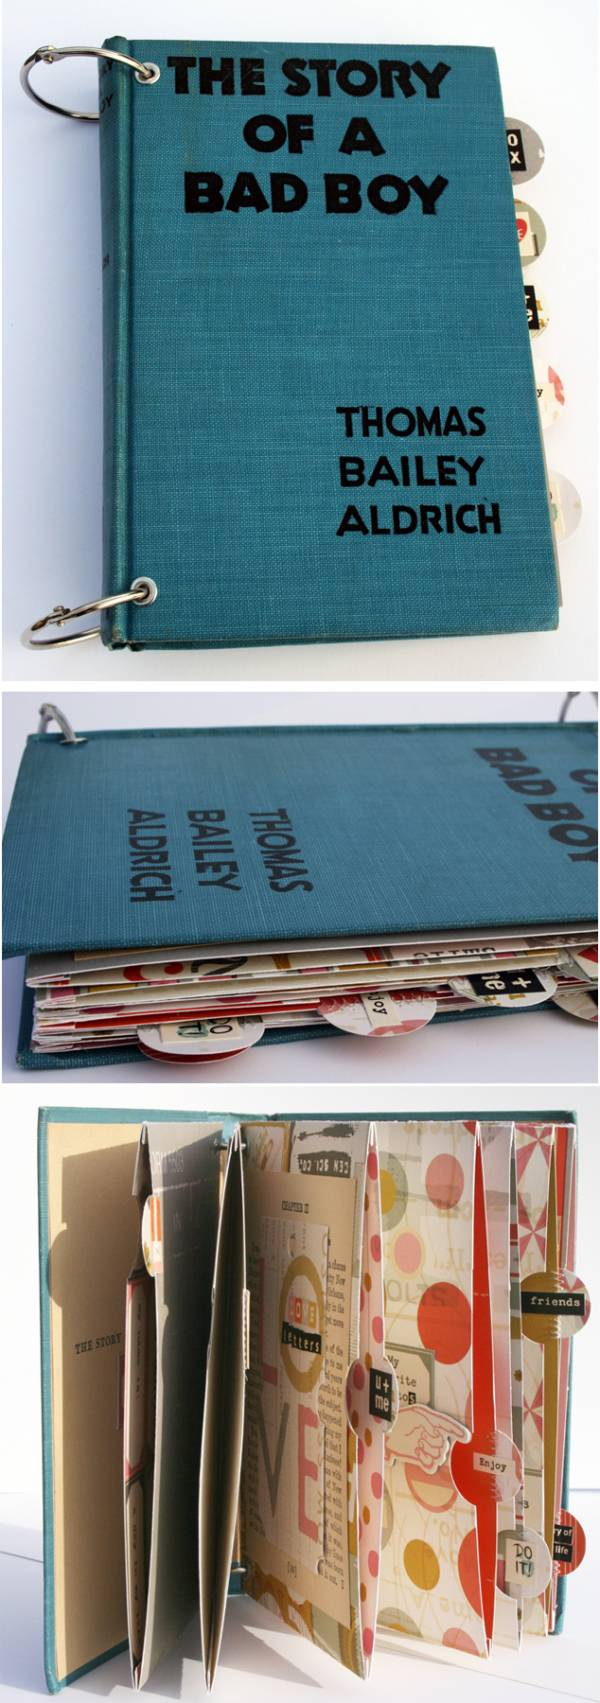 Scrapbook ideas newspaper articles - Pocket Album Using Vintage Book Cover At Cosmo Cricket